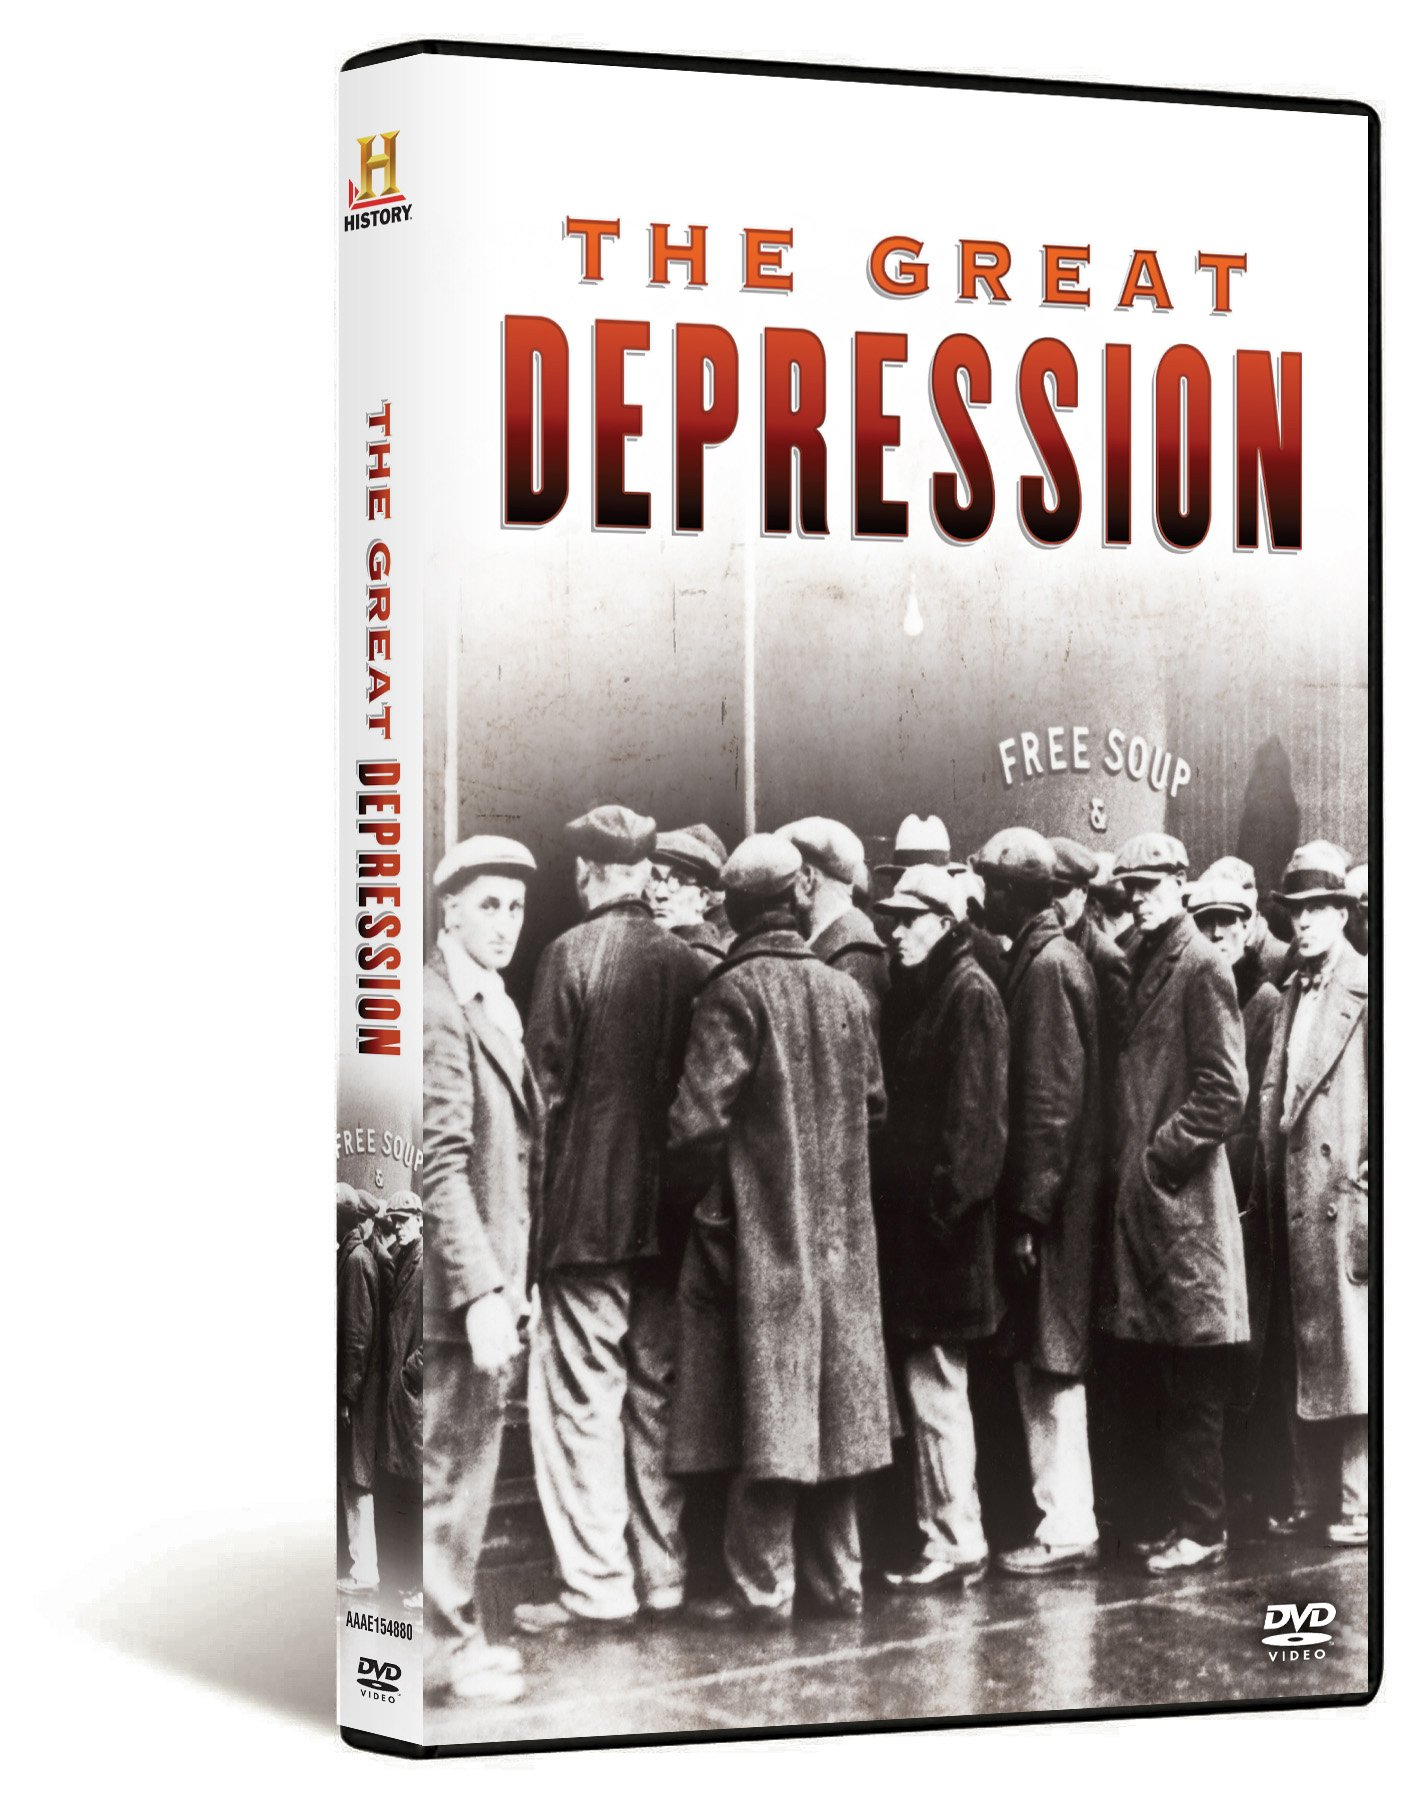 Great Depression, The by A&E